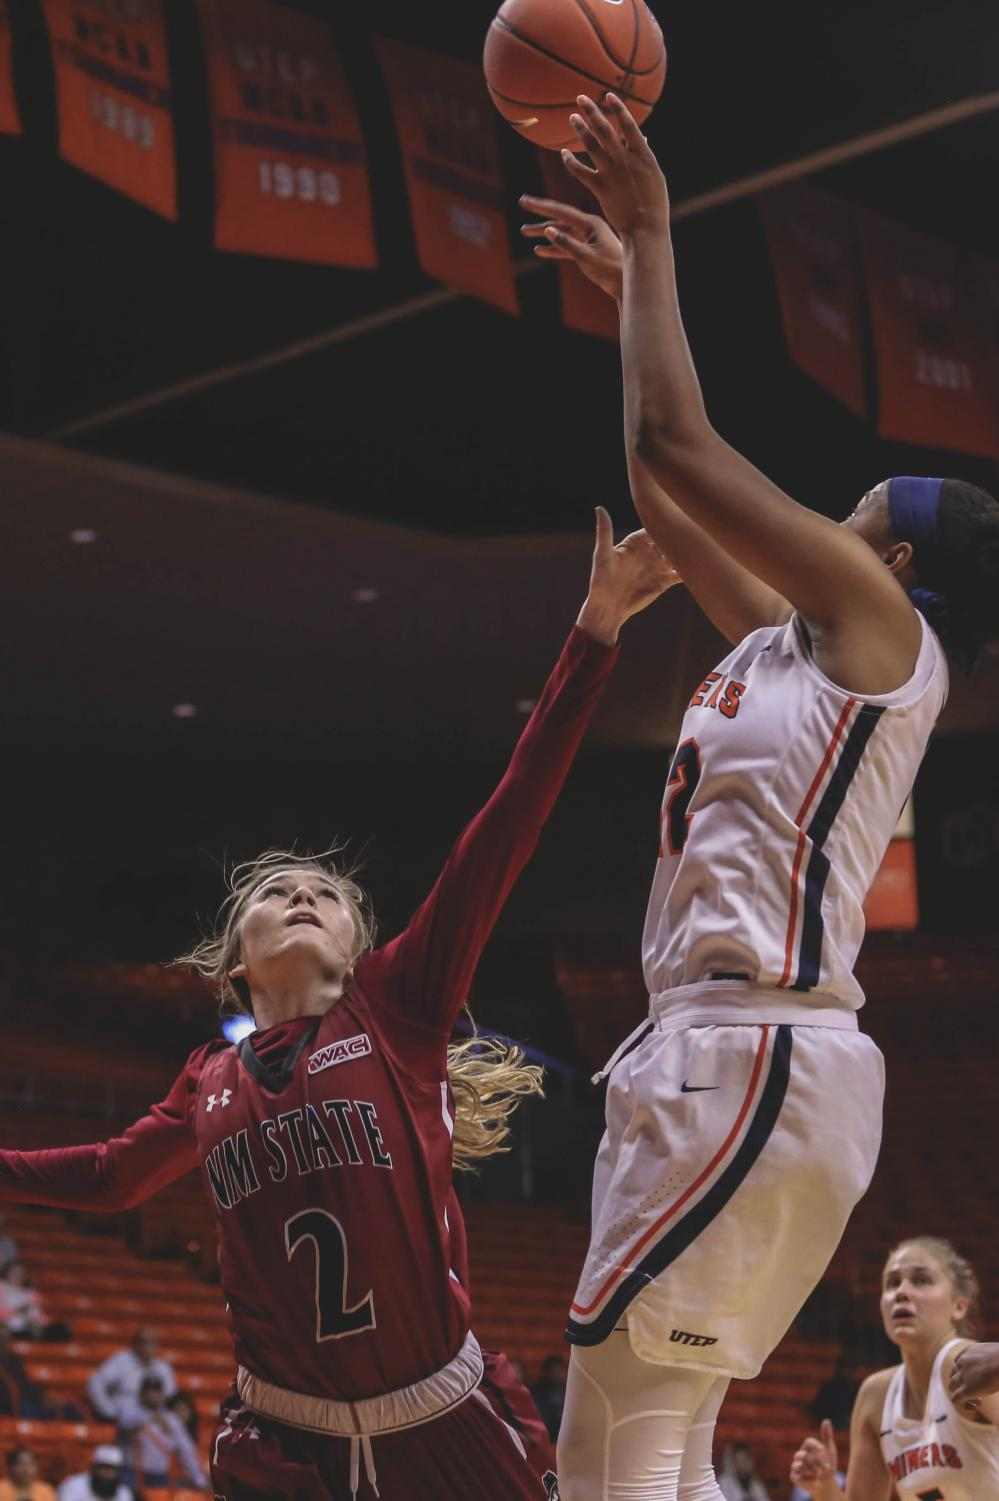 Junior+guard+Ariona+Gill+attempst+to+make+a+basket+over+the+NMSU+Aggies.+